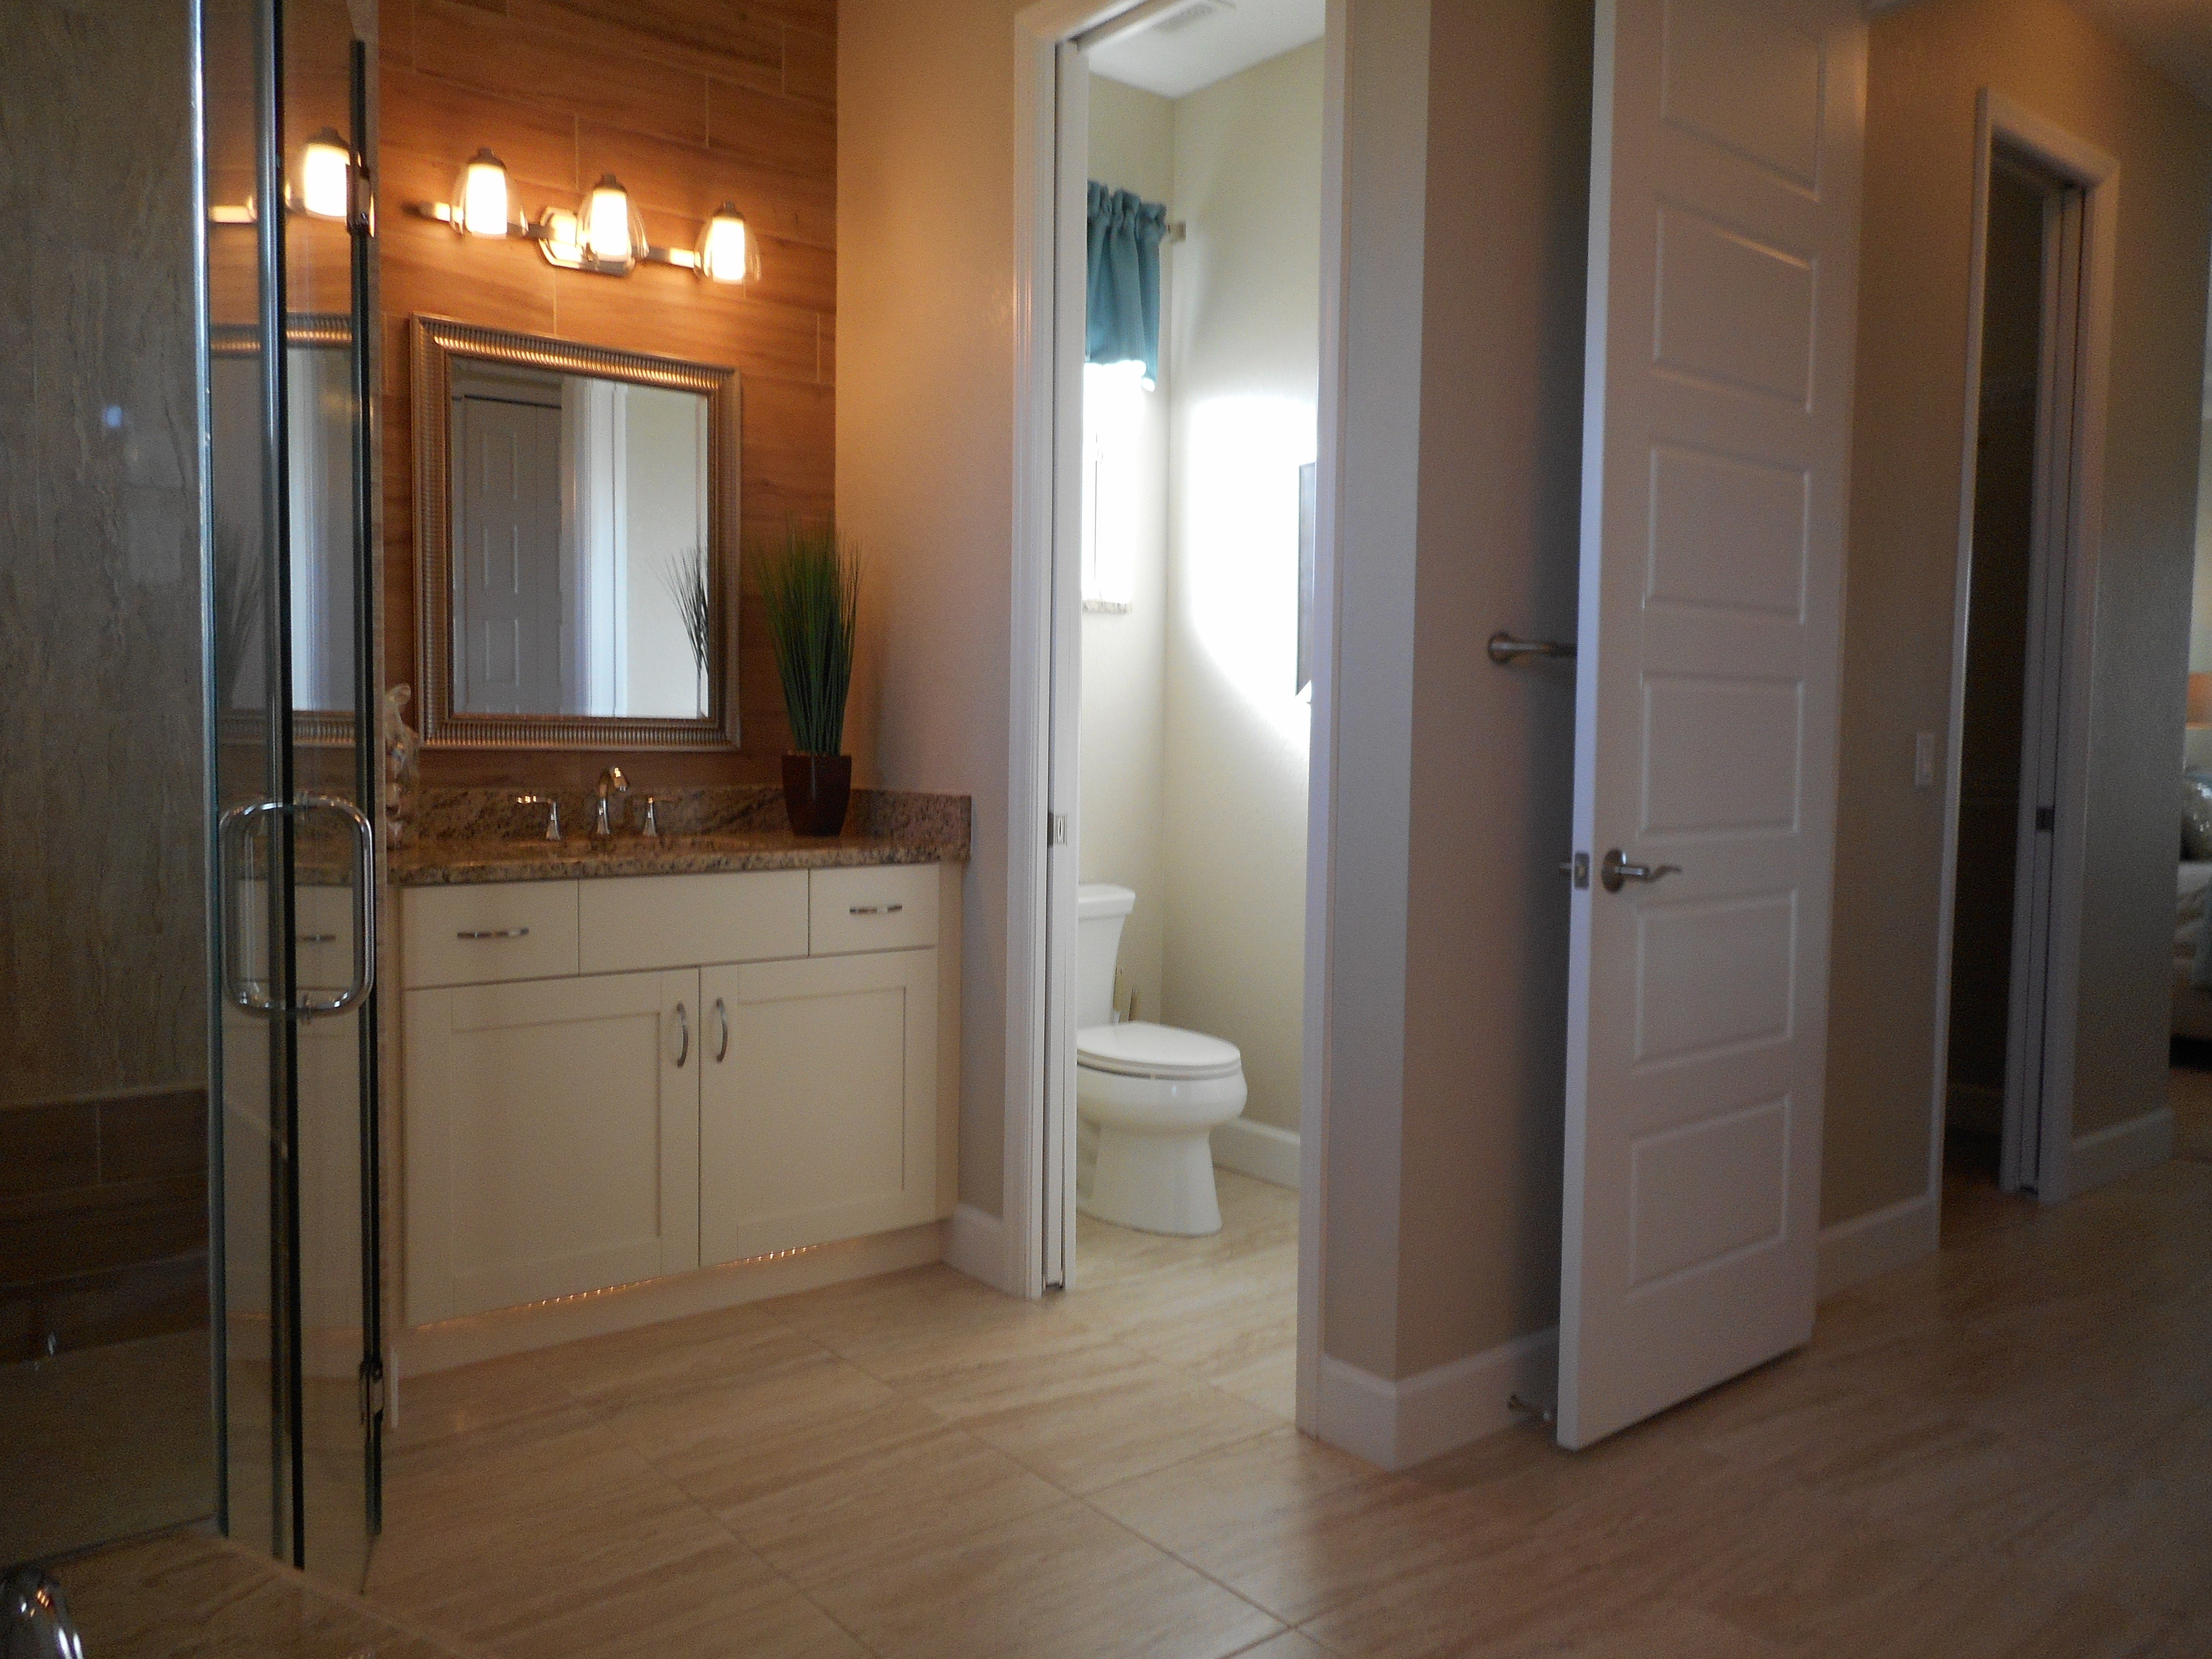 Home Remodeling Services in Englewood, FL